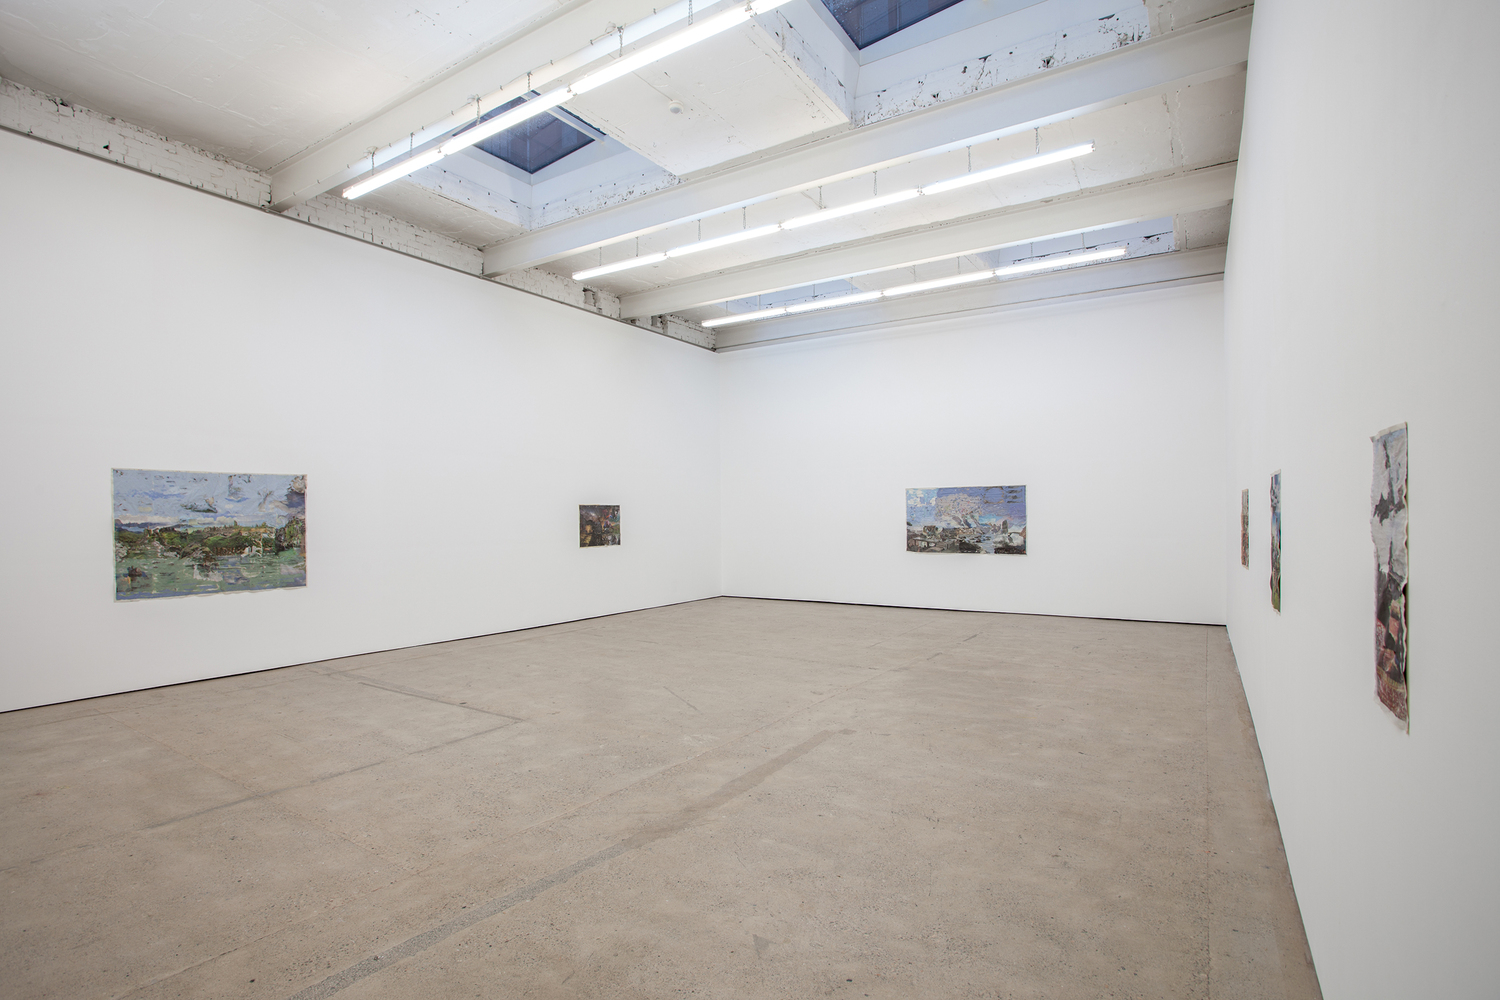 Tony Swain 'Works or Everyone' Installation view, The Modern Institute Aird's Lane, Glasgow, 2017